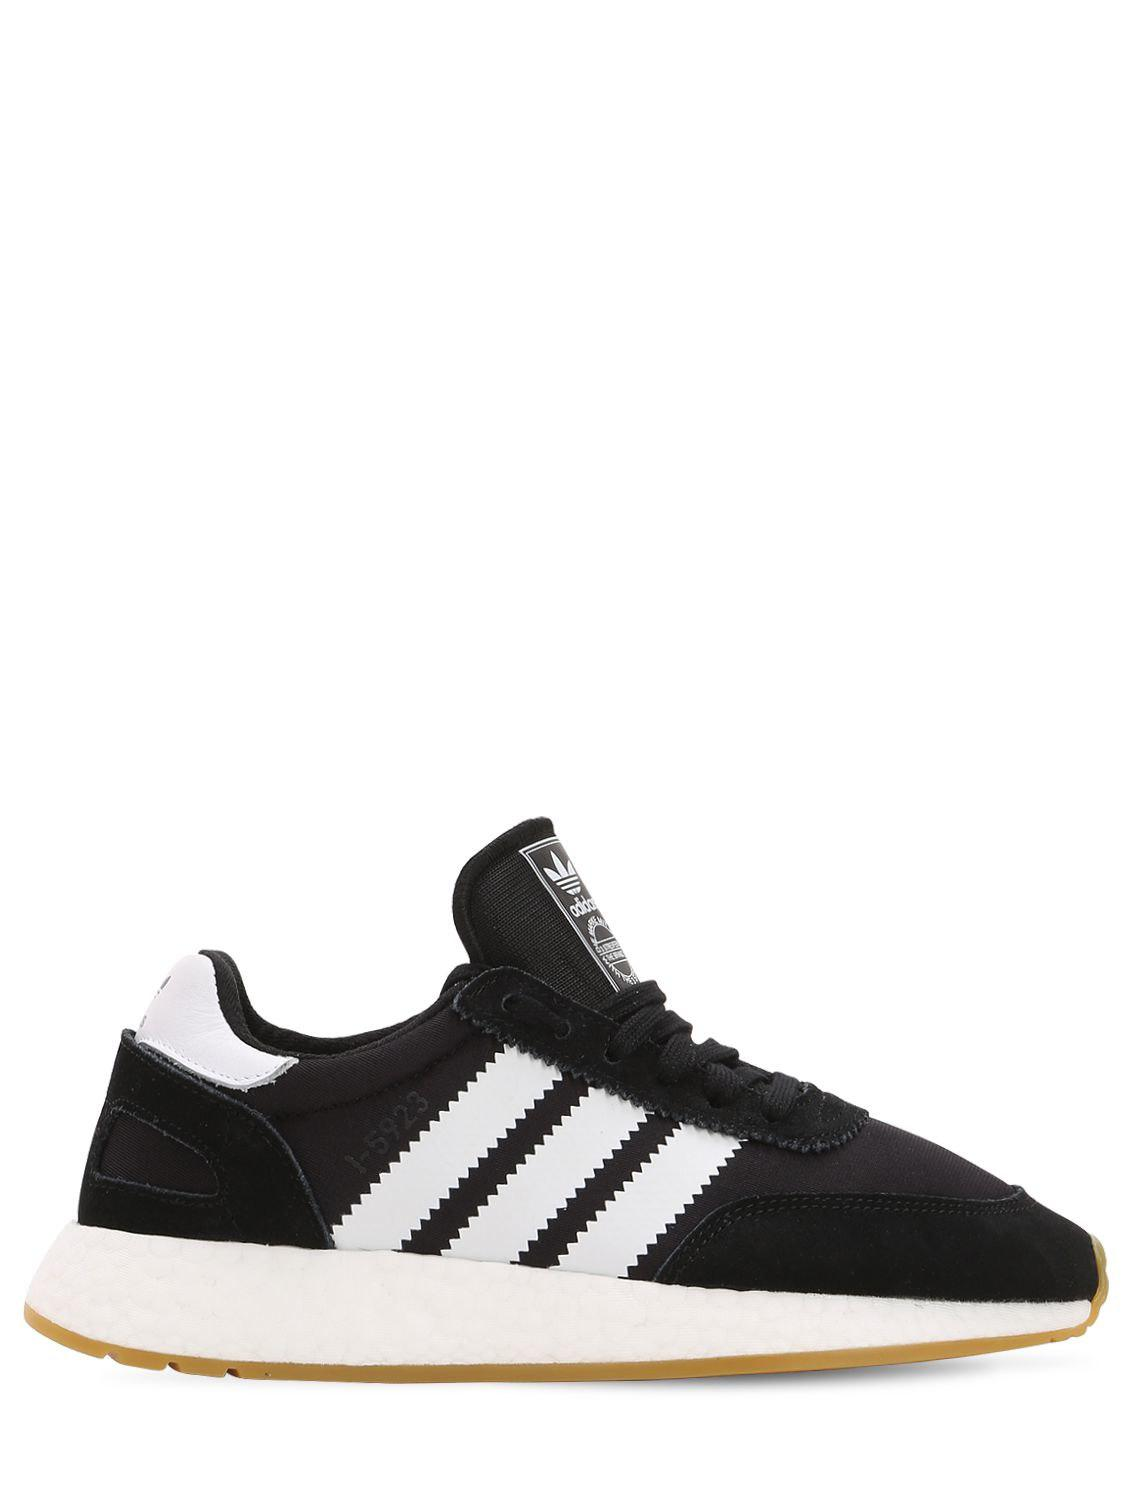 hot sale online 58b1f ba622 Adidas Originals - Black I-5923 Boost Sneakers - Lyst. View fullscreen